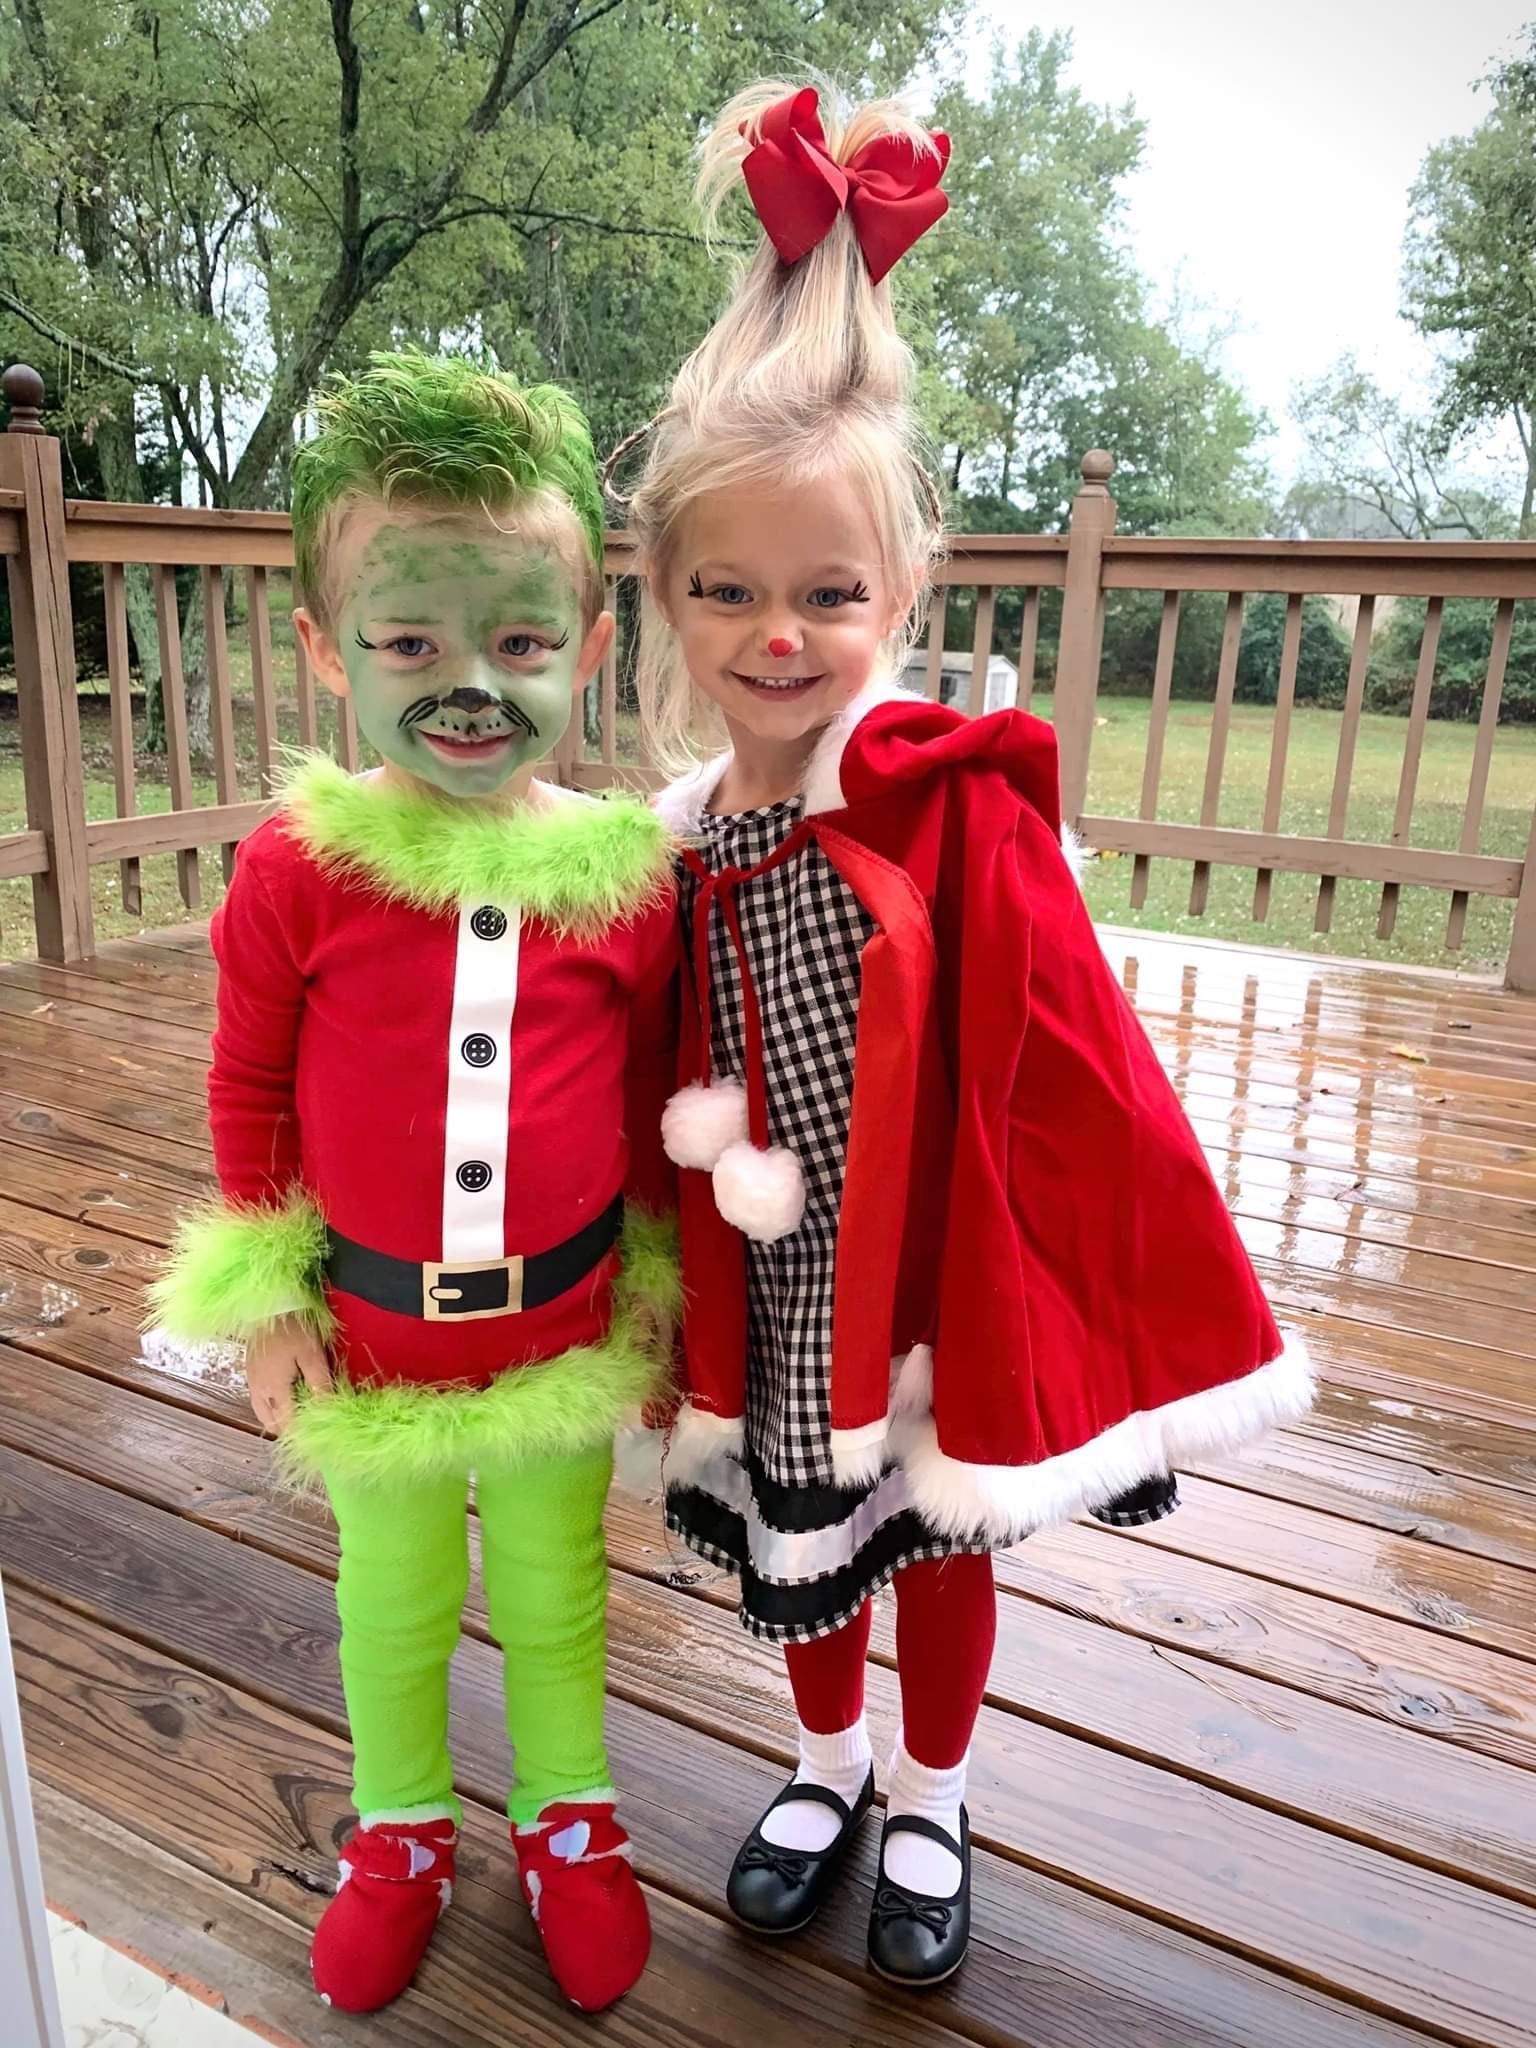 Pin by Jenny Avey on BABY FEVER in 2020 Halloween